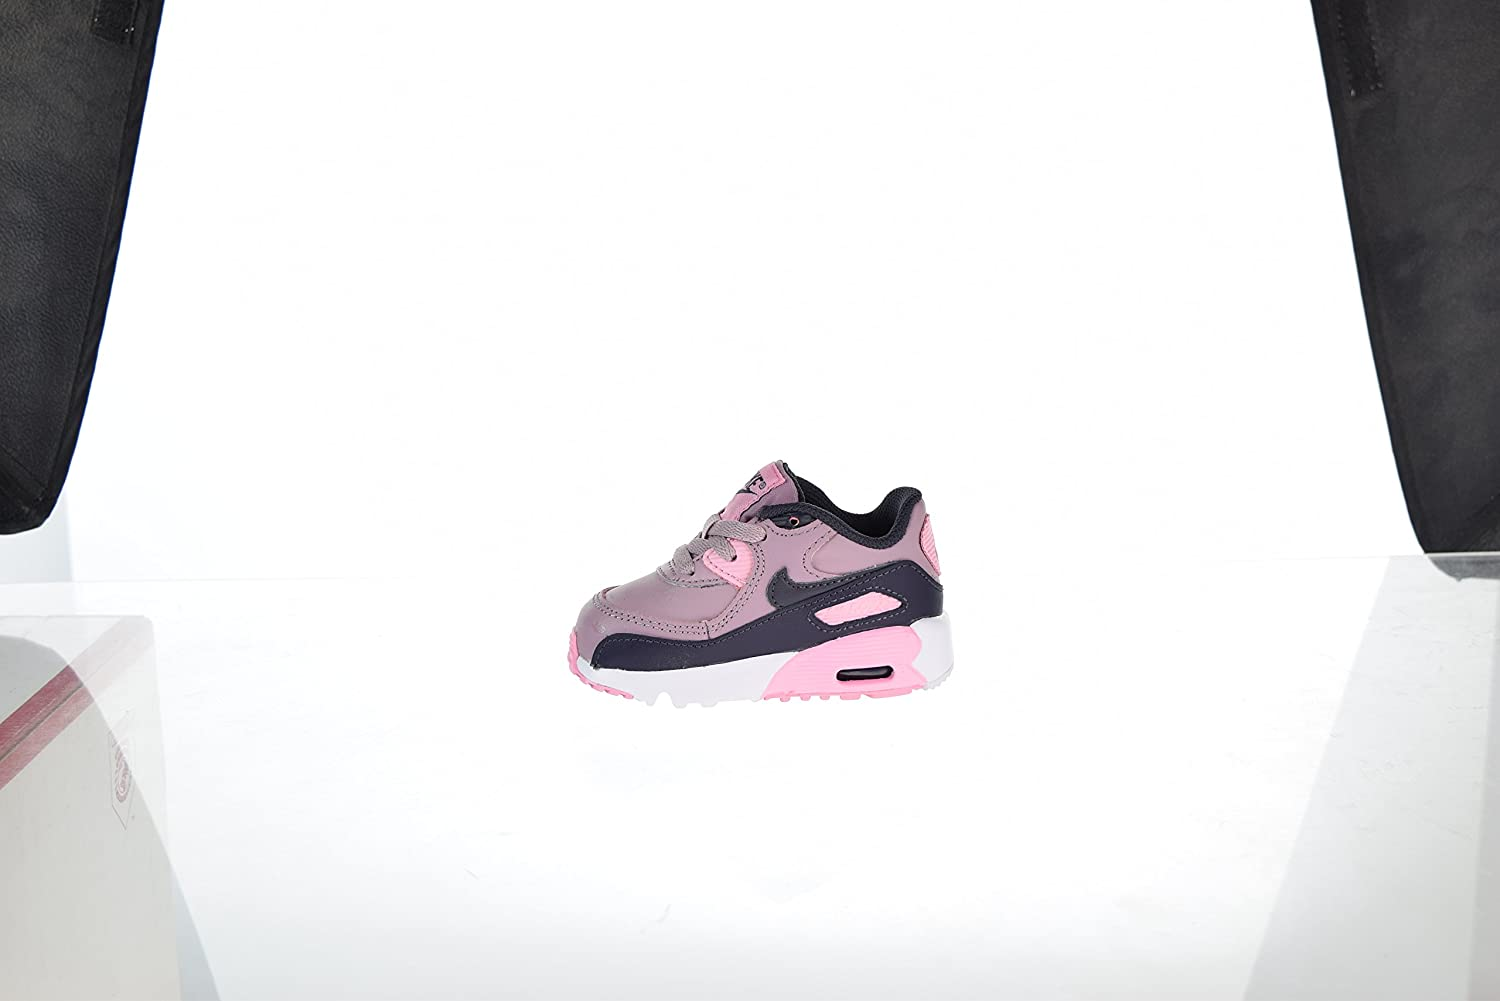 4b2184f6cb7f2 NIKE Air Max 90 Leather Toddler's Shoes Elemental Rose 833379-602